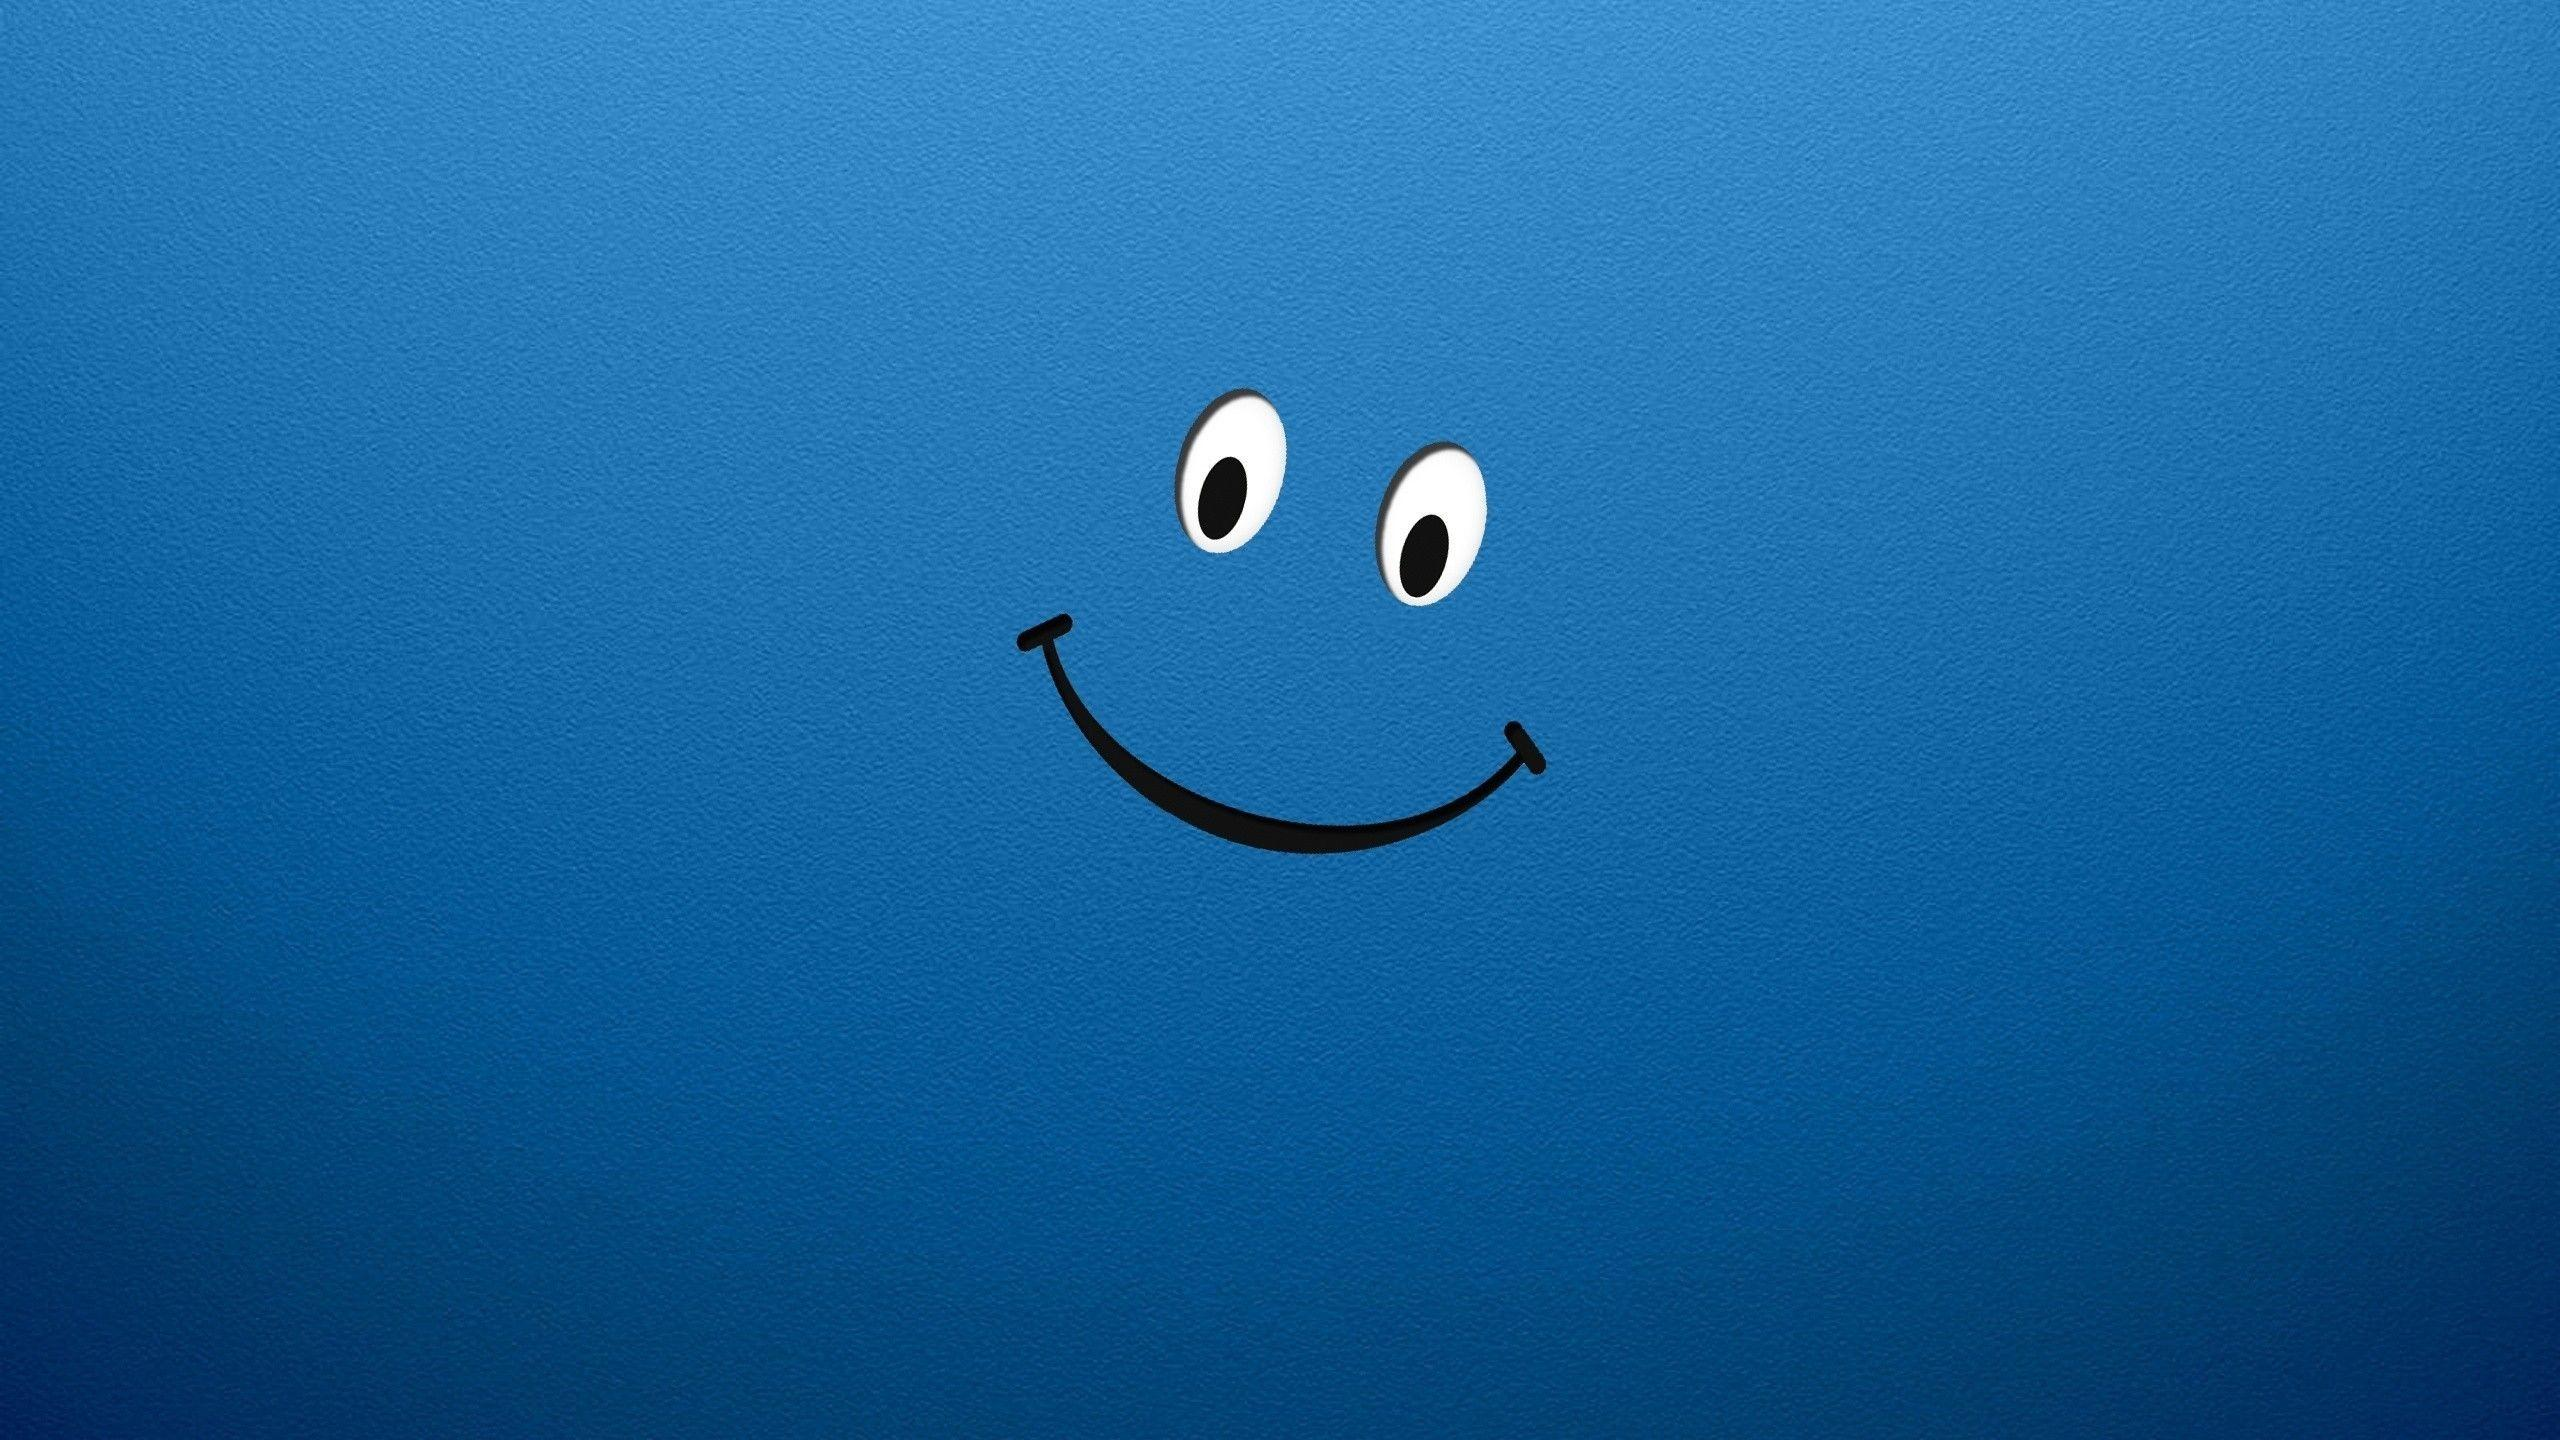 Be Happy Wallpapers - HD Wallpapers Inn